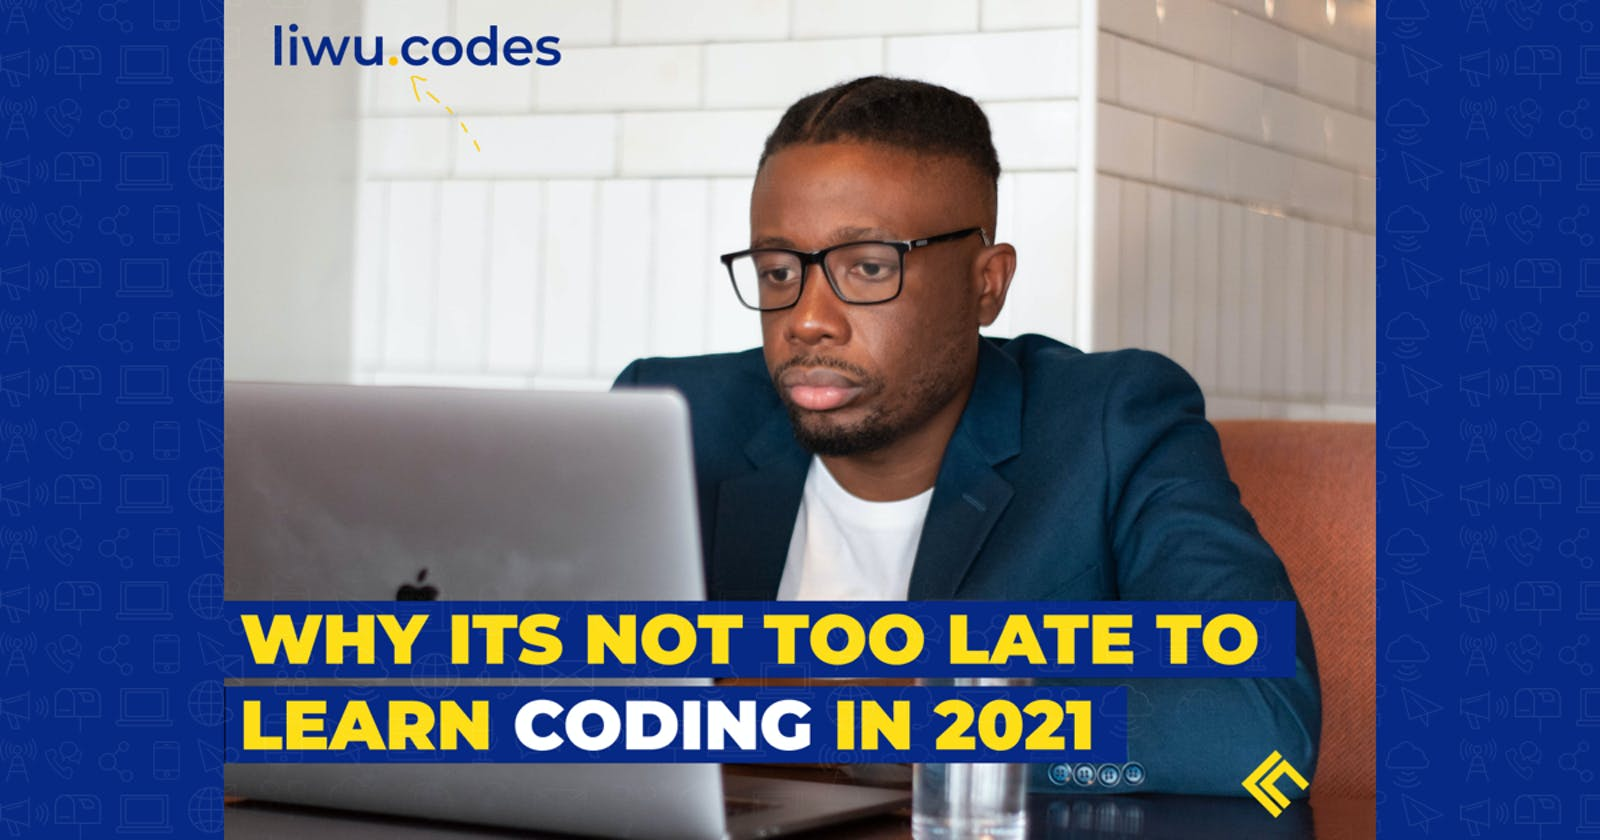 Five reasons why it is not too late to learn coding in 2021